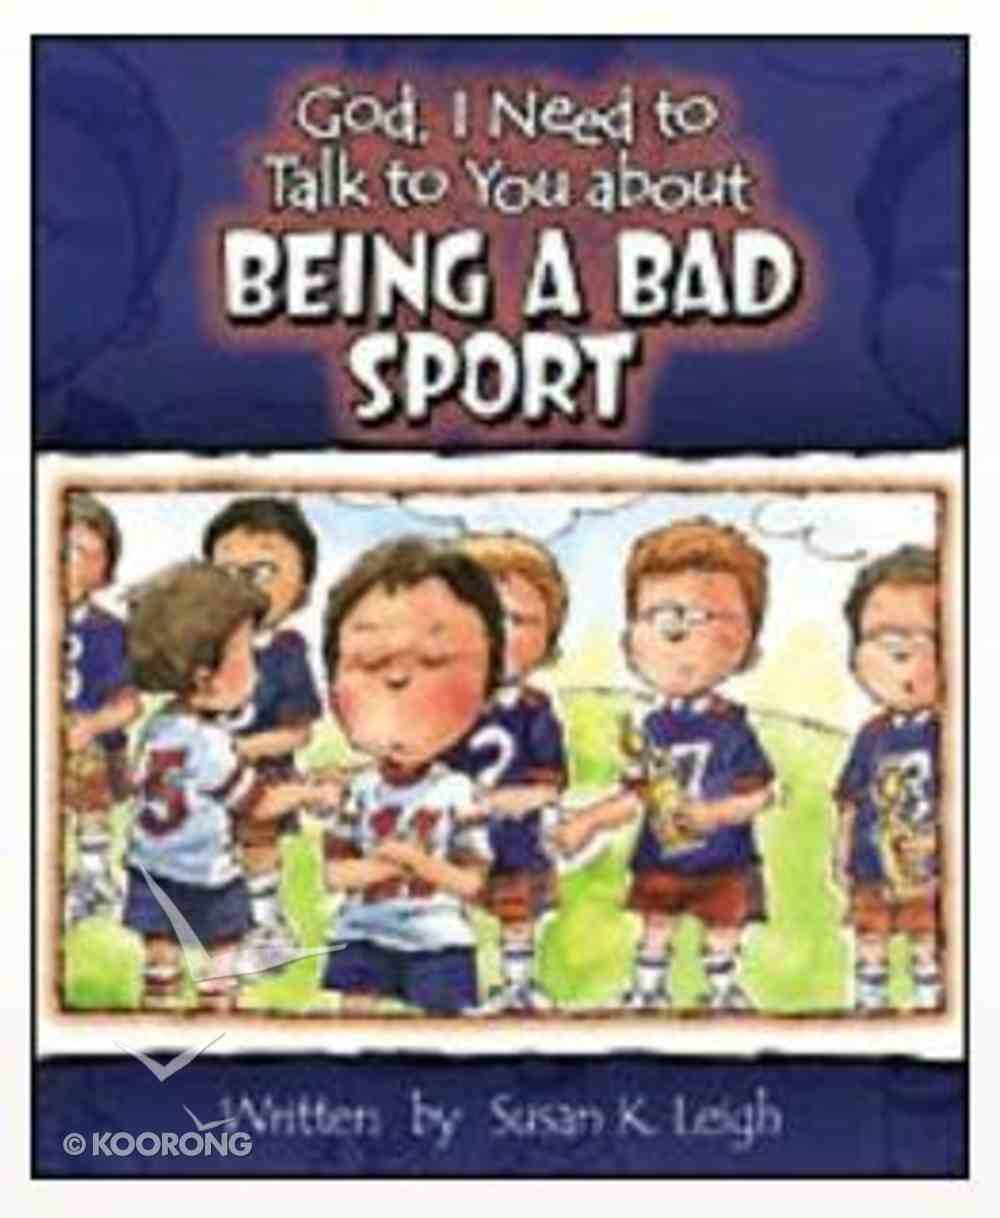 Being a Bad Sport (God, I Need To Talk To You About Series) Paperback